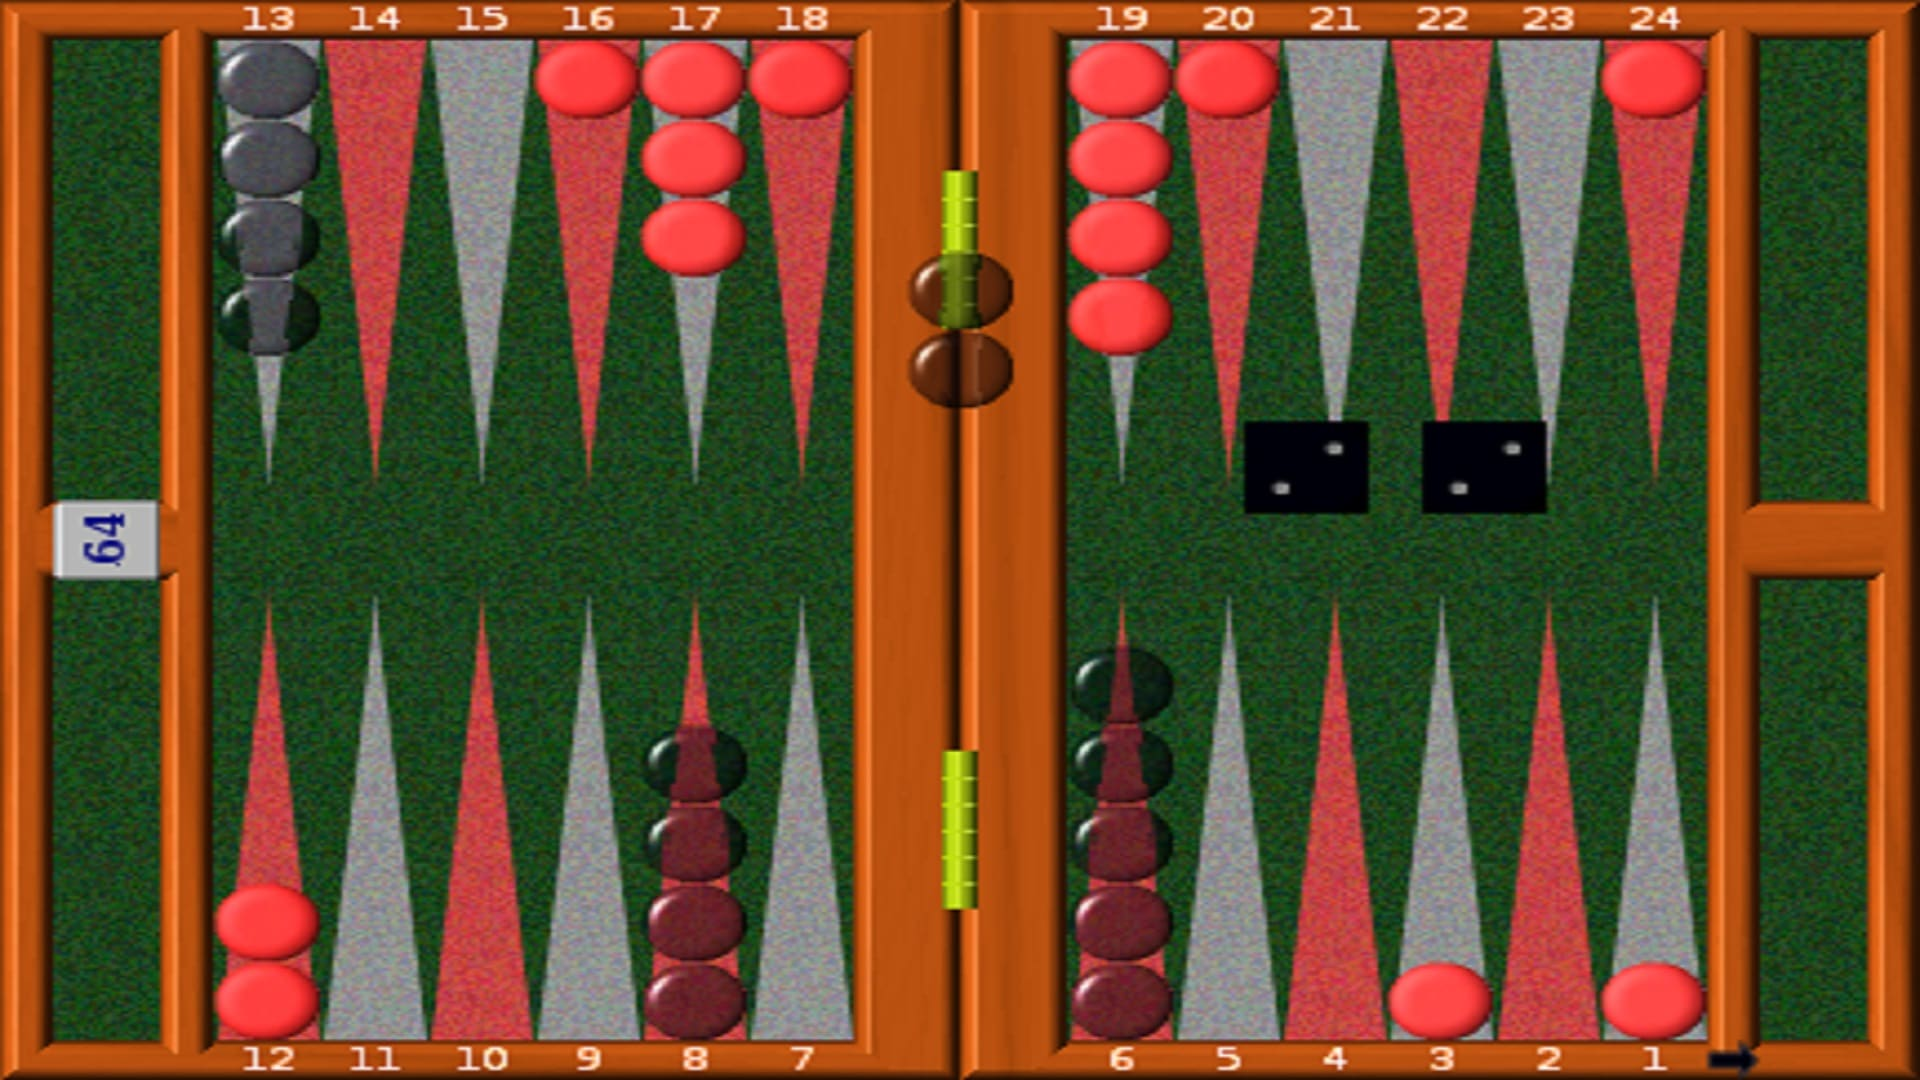 BACKGAMMON Game Rules and How to Play Guide